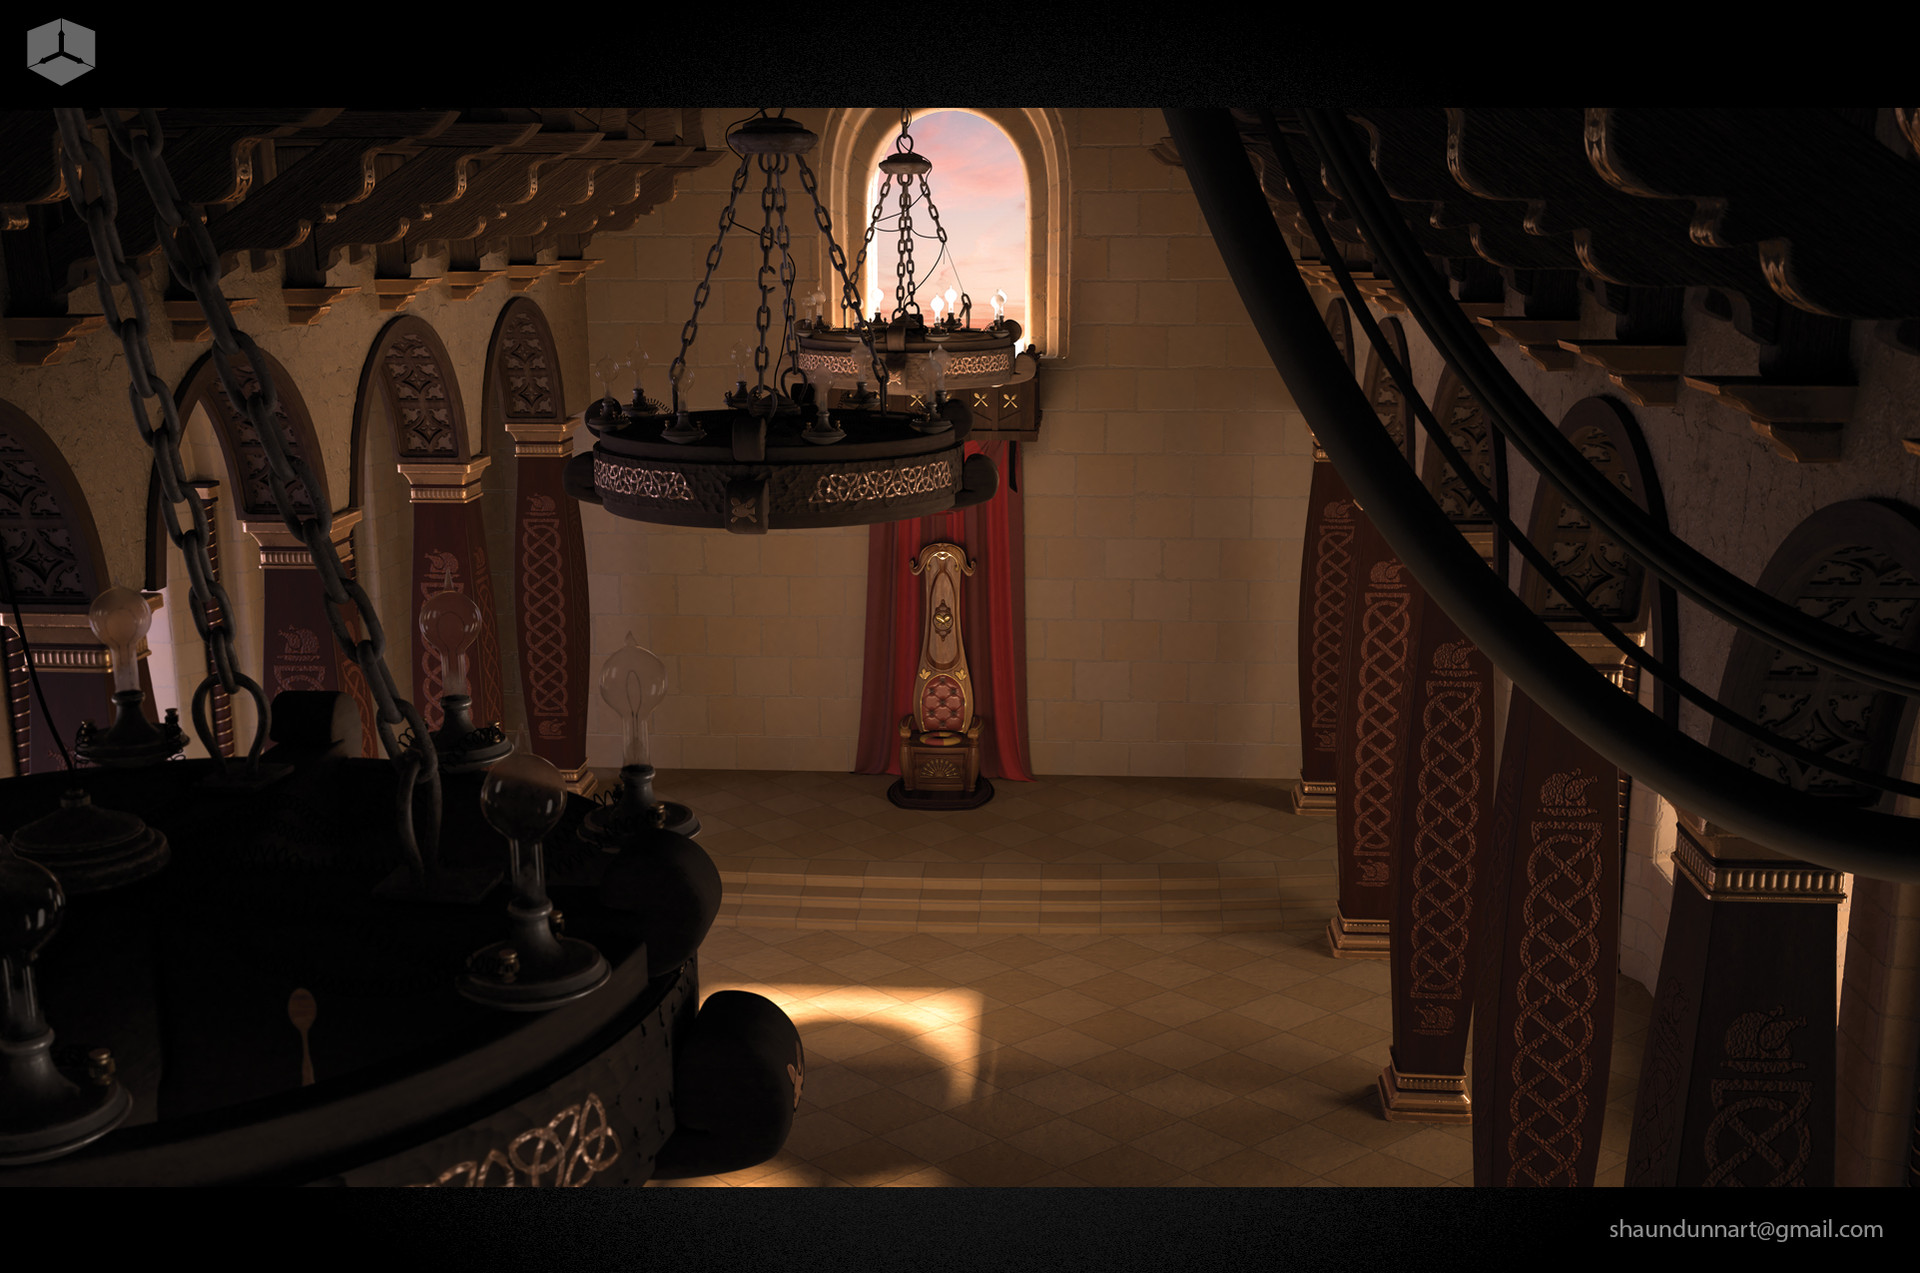 This is a shot of the original environment I designed and developed for my MFA thesis.